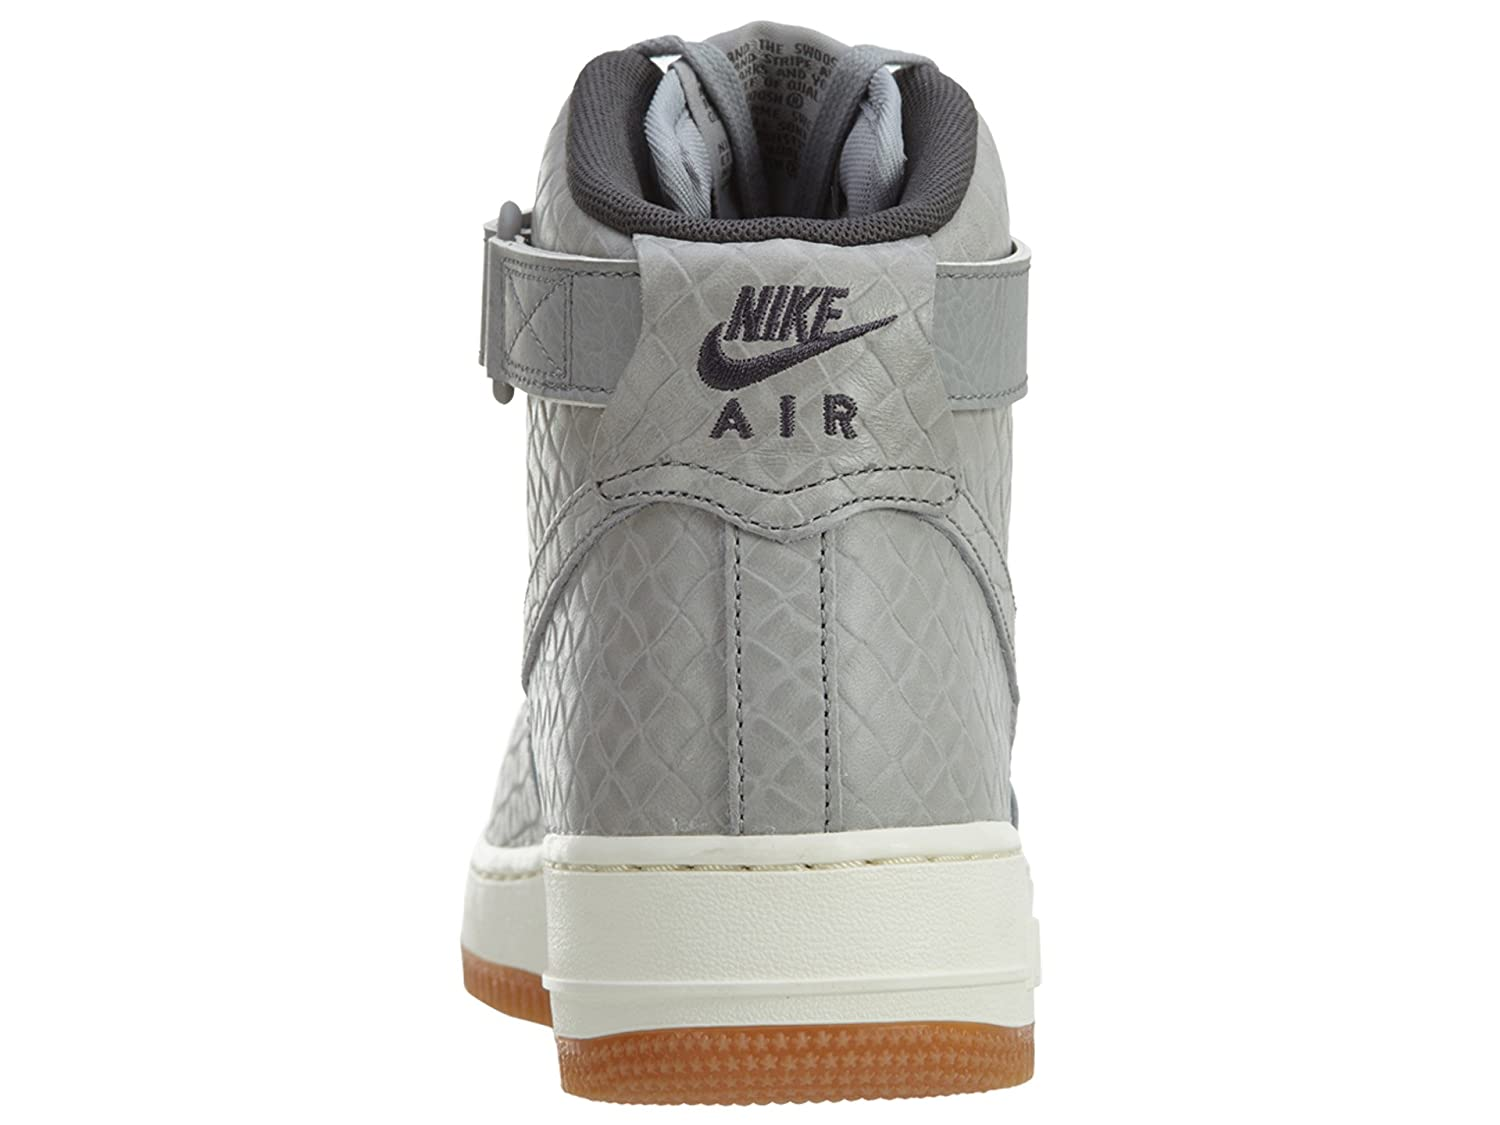 the best attitude d4f61 76cdb Amazon.com   Nike Women s Air Force 1 Hi Premium Basketball Shoe   Fashion  Sneakers